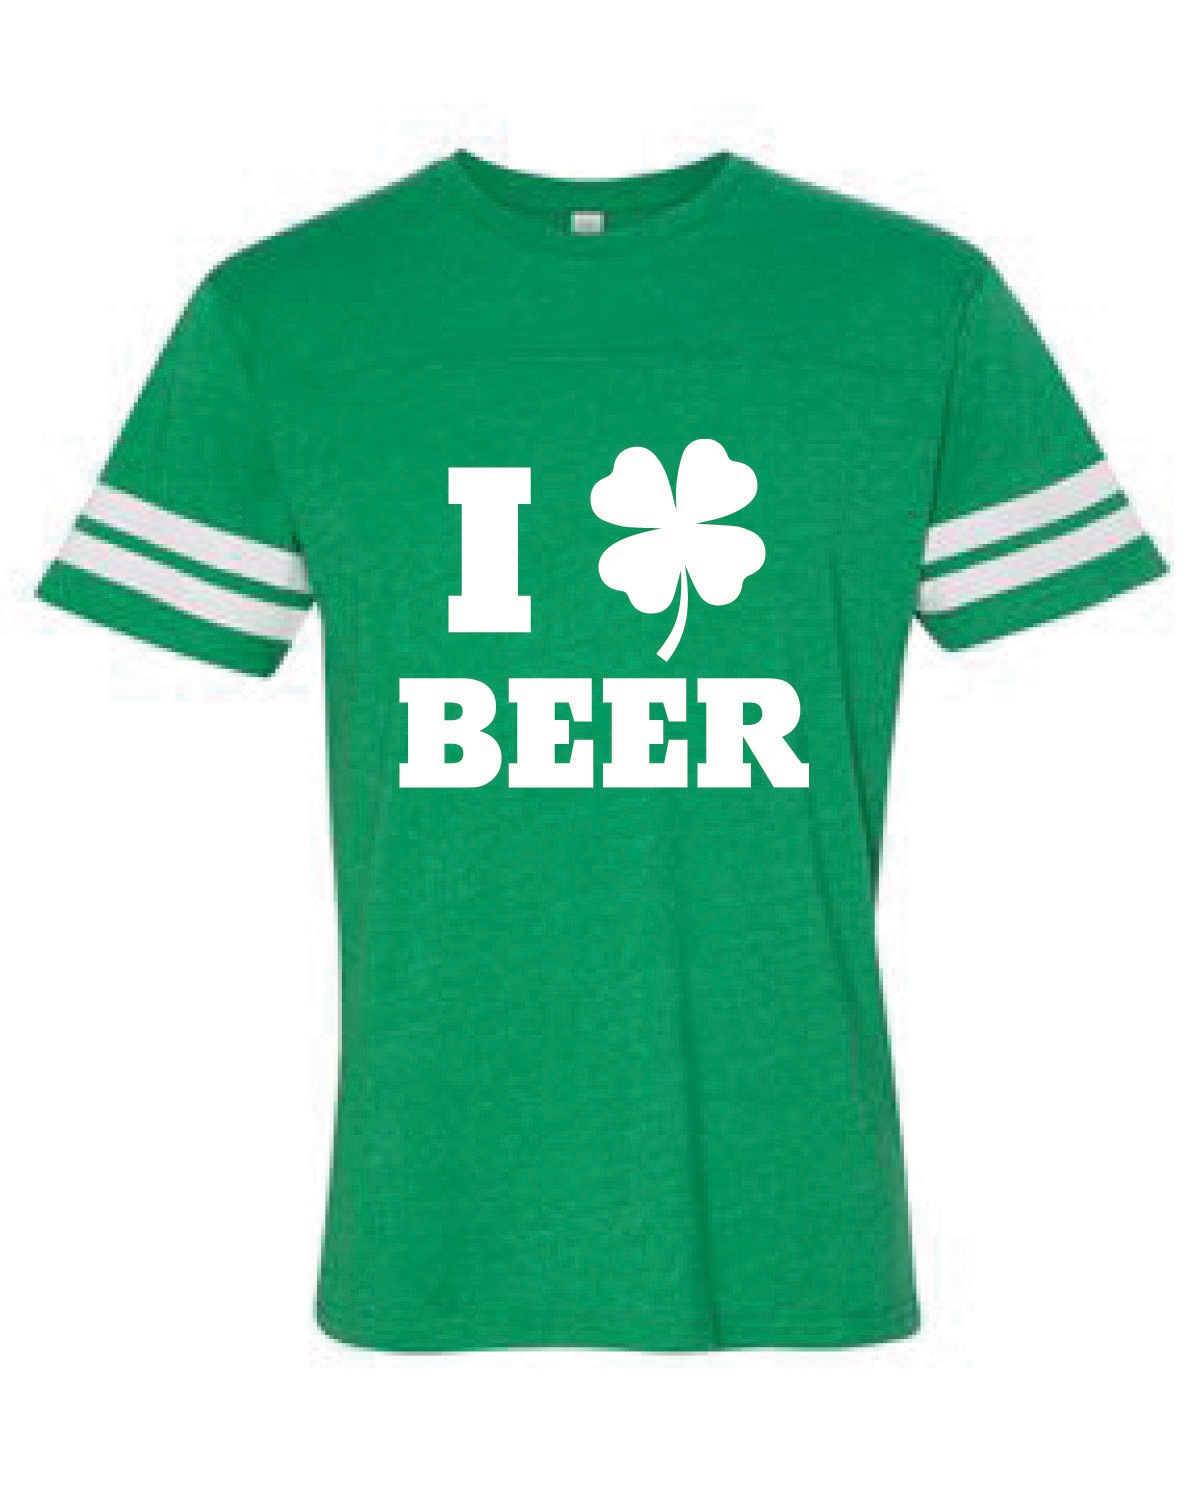 Football Style Jersey Tee (I LOVE BEER)